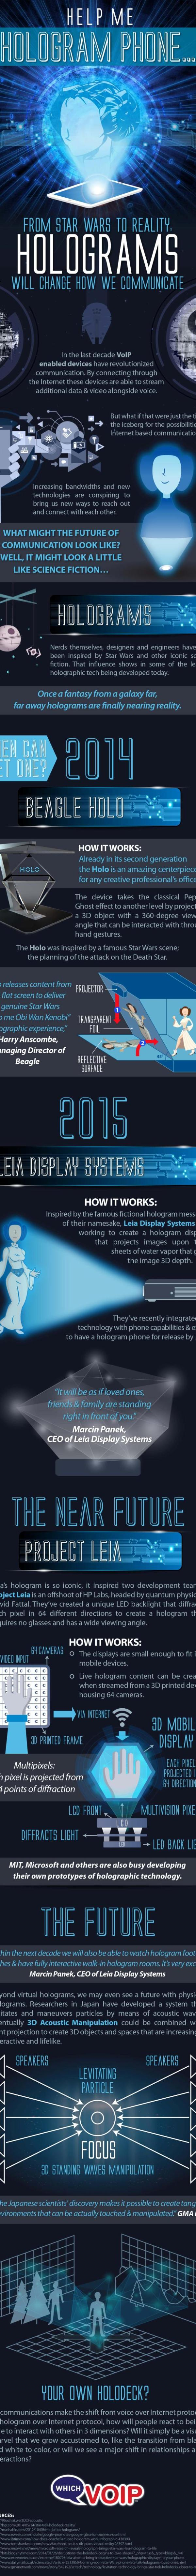 Hologram Phones